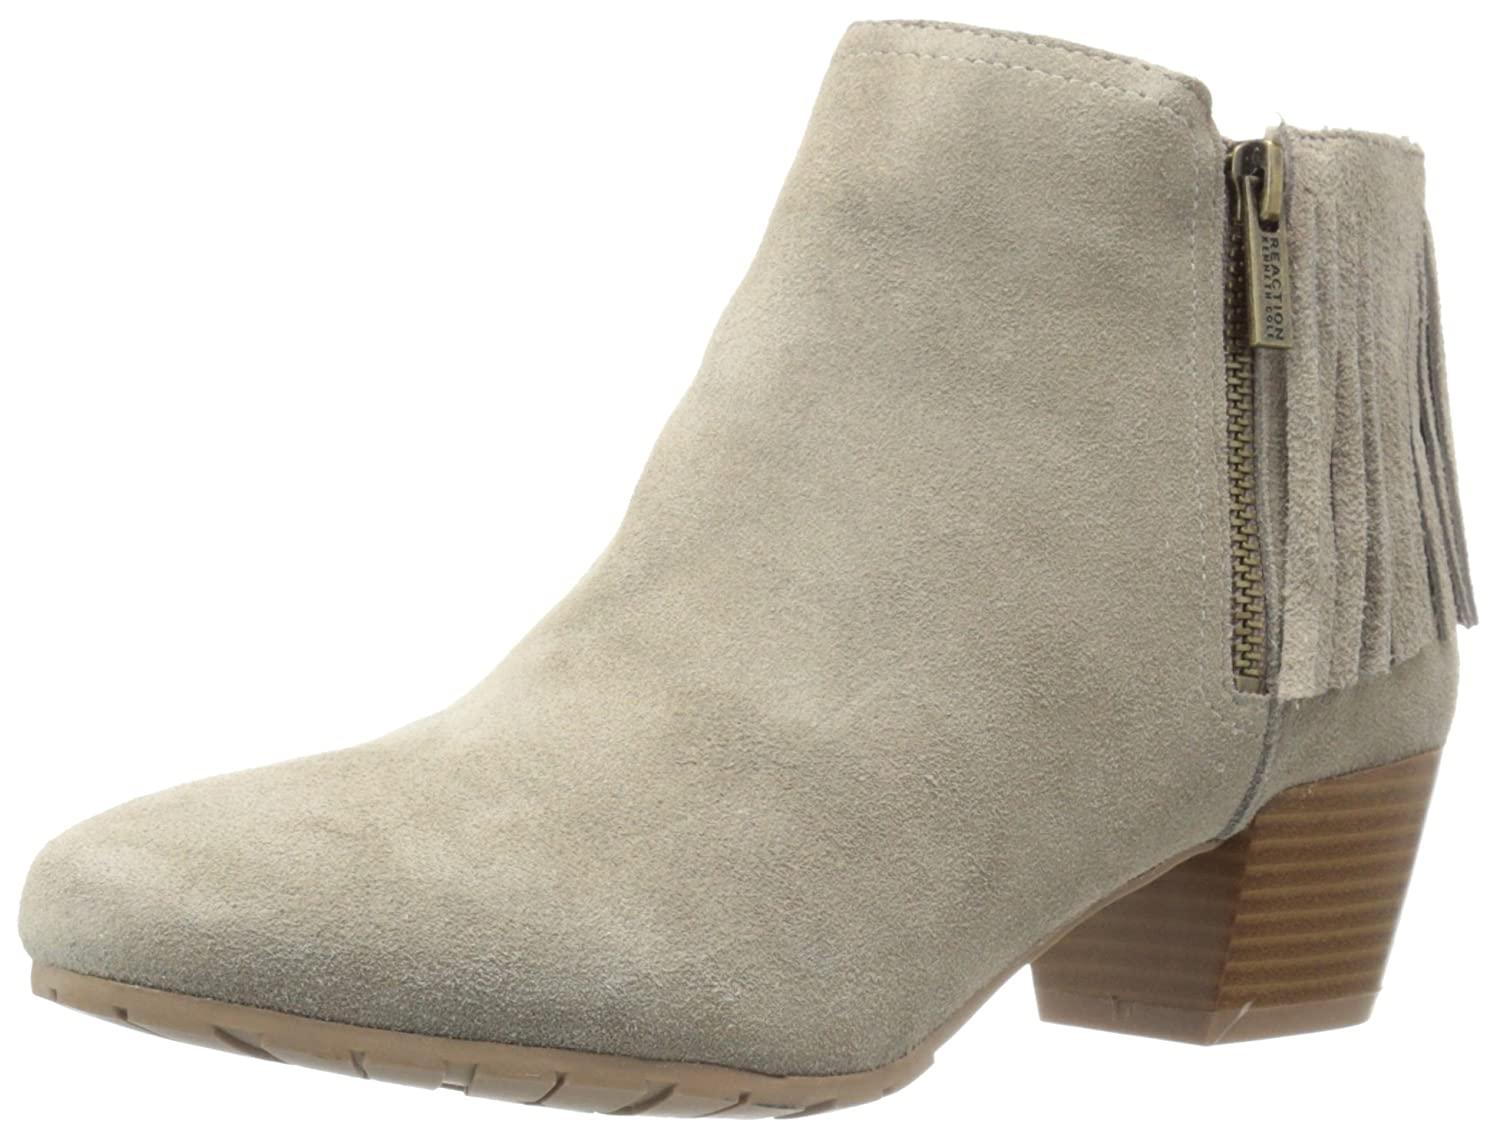 Kenneth Cole REACTION Women's PIL-Ates Ankle Boot B01G5ULJJ4 7.5 B(M) US|Taupe